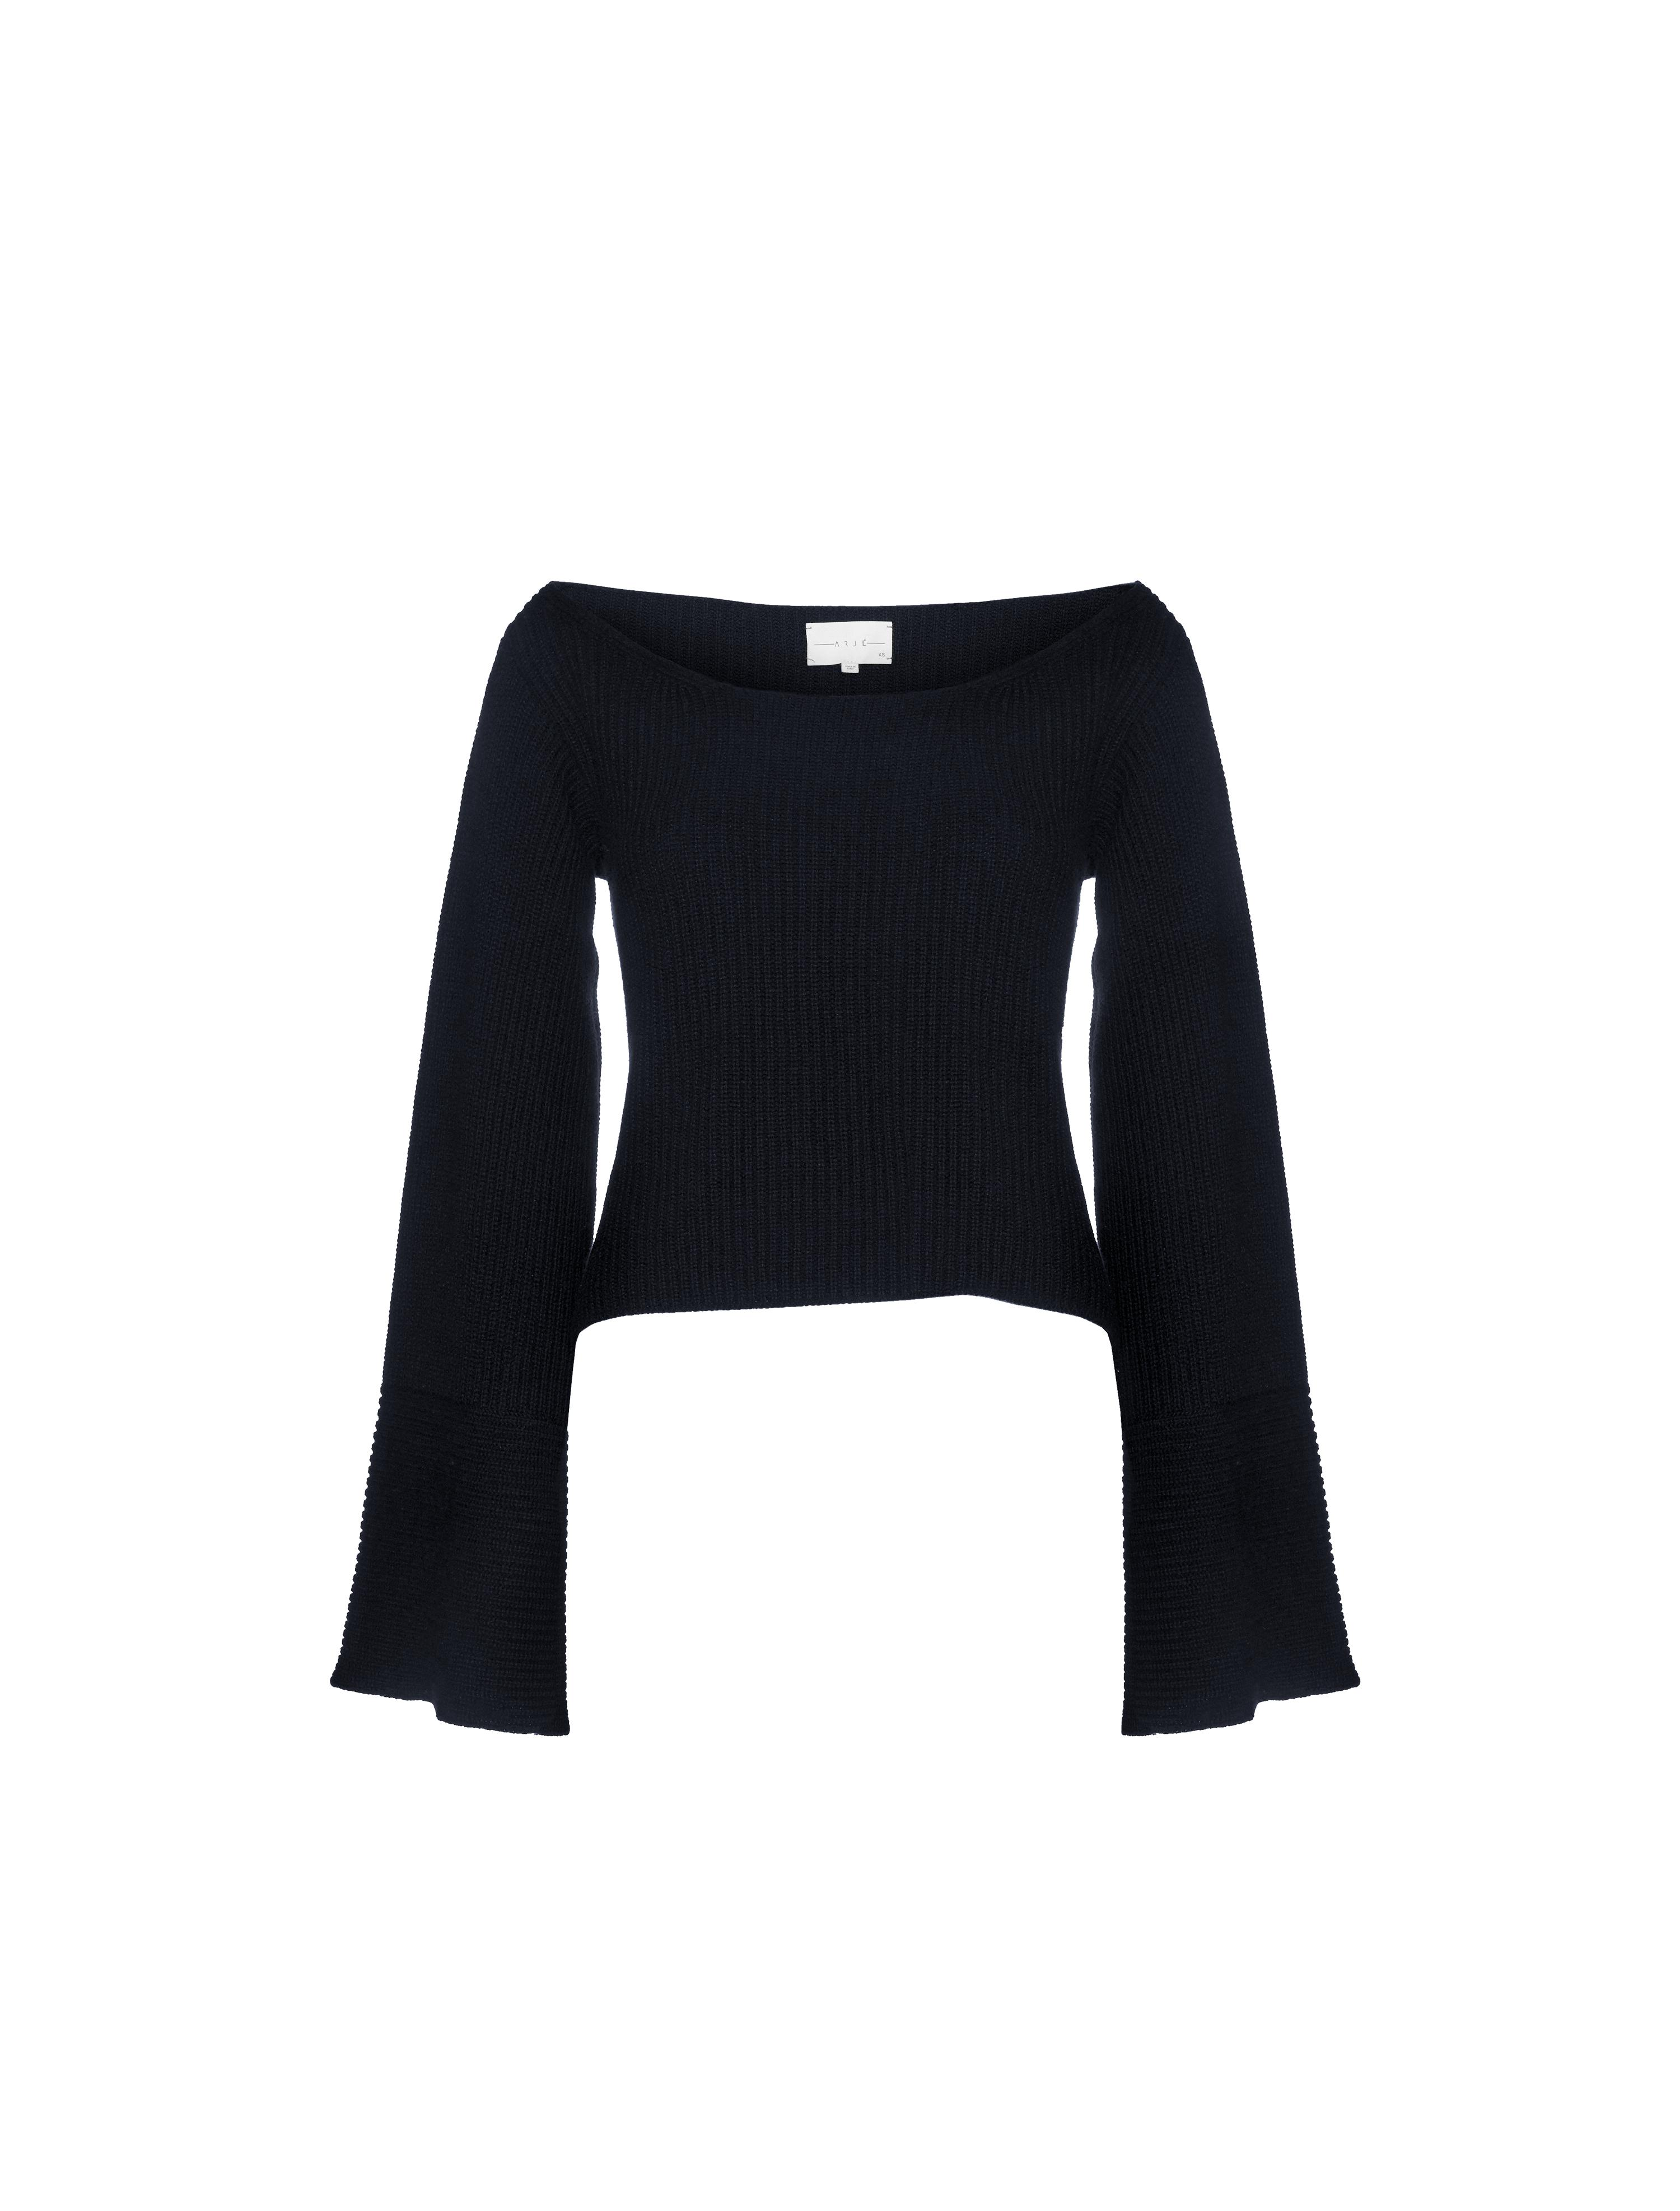 THE CORTINA CASHMERE BLEND WIDE SLEEVE SWEATER